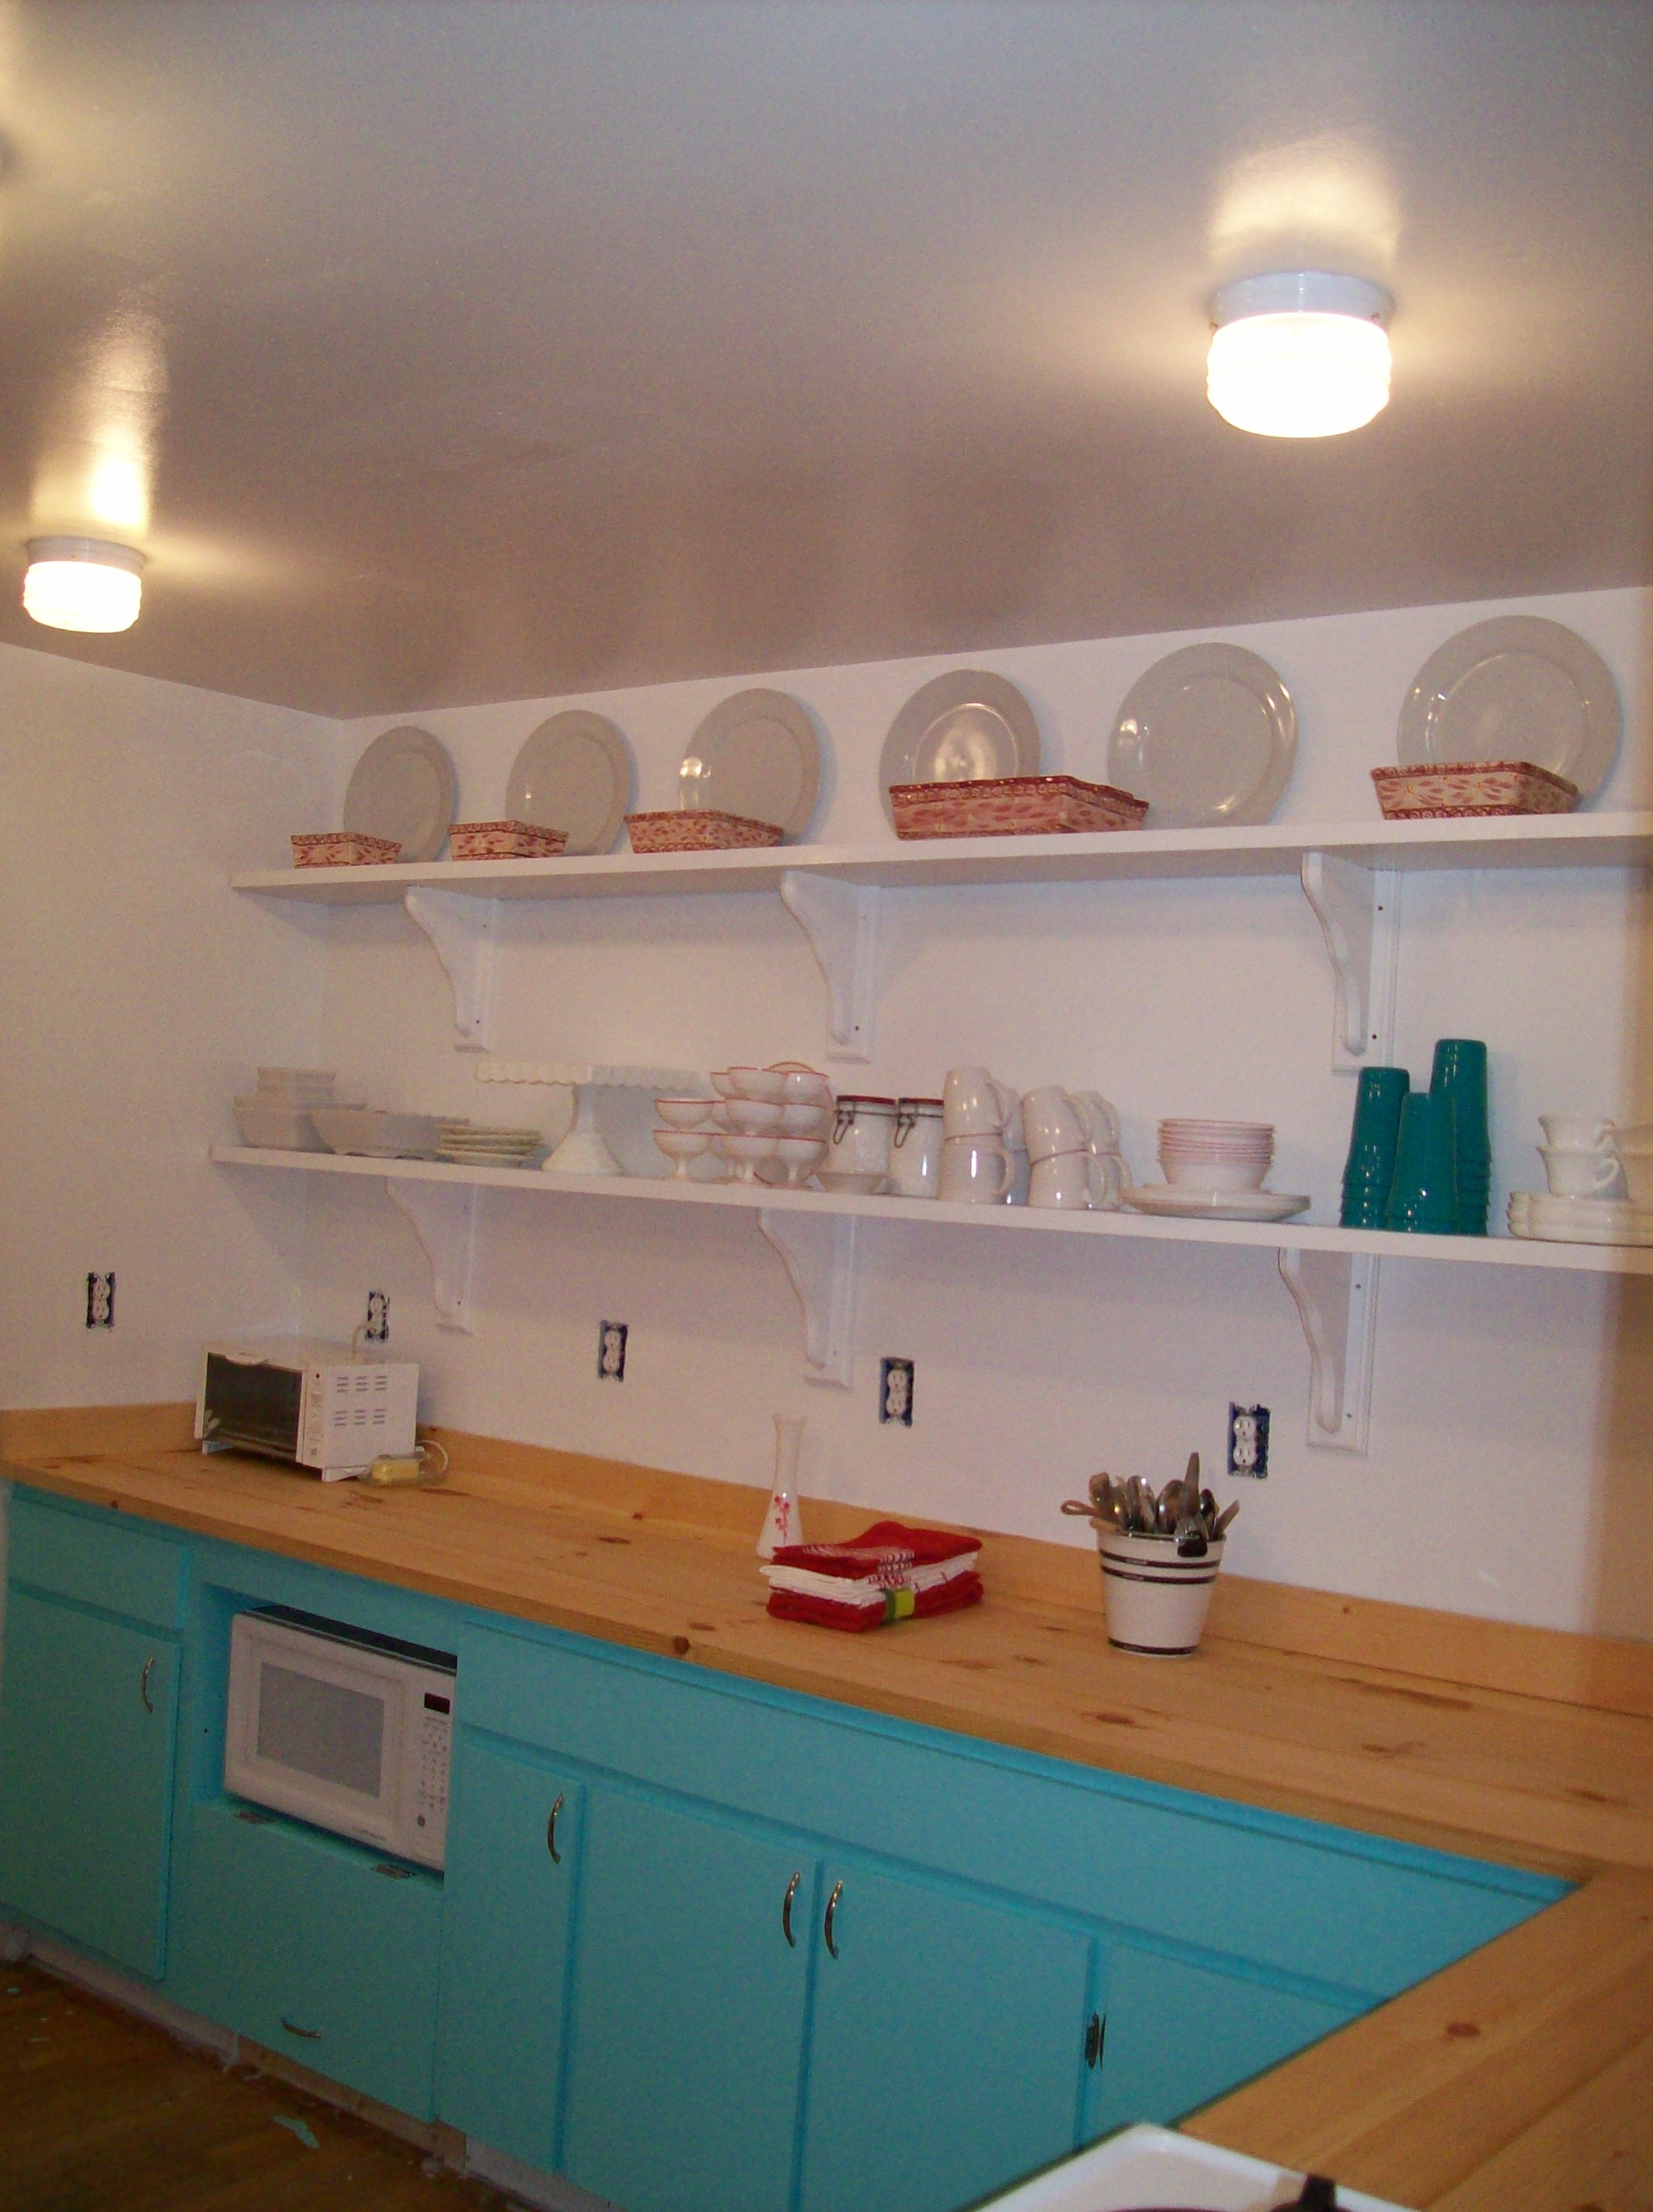 Remodelaholic Recycled Awesome Kitchen Remodel Guest Post